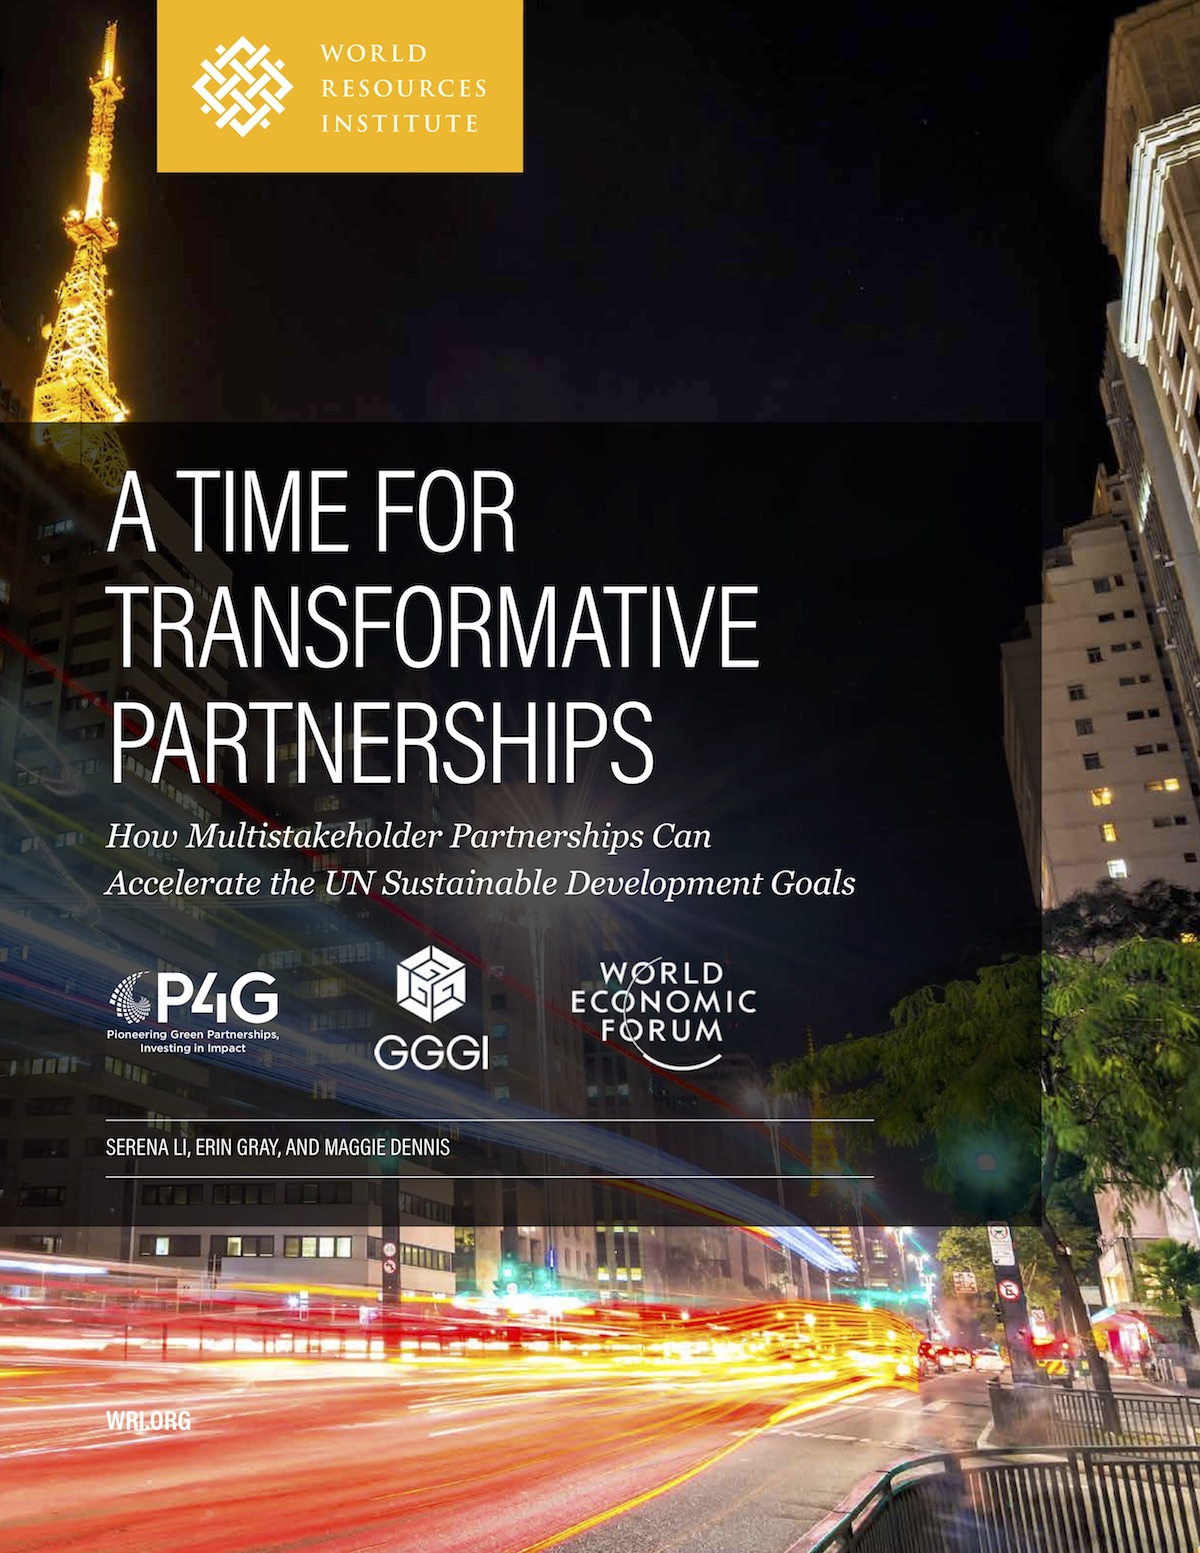 A Time for Transformative Partnerships